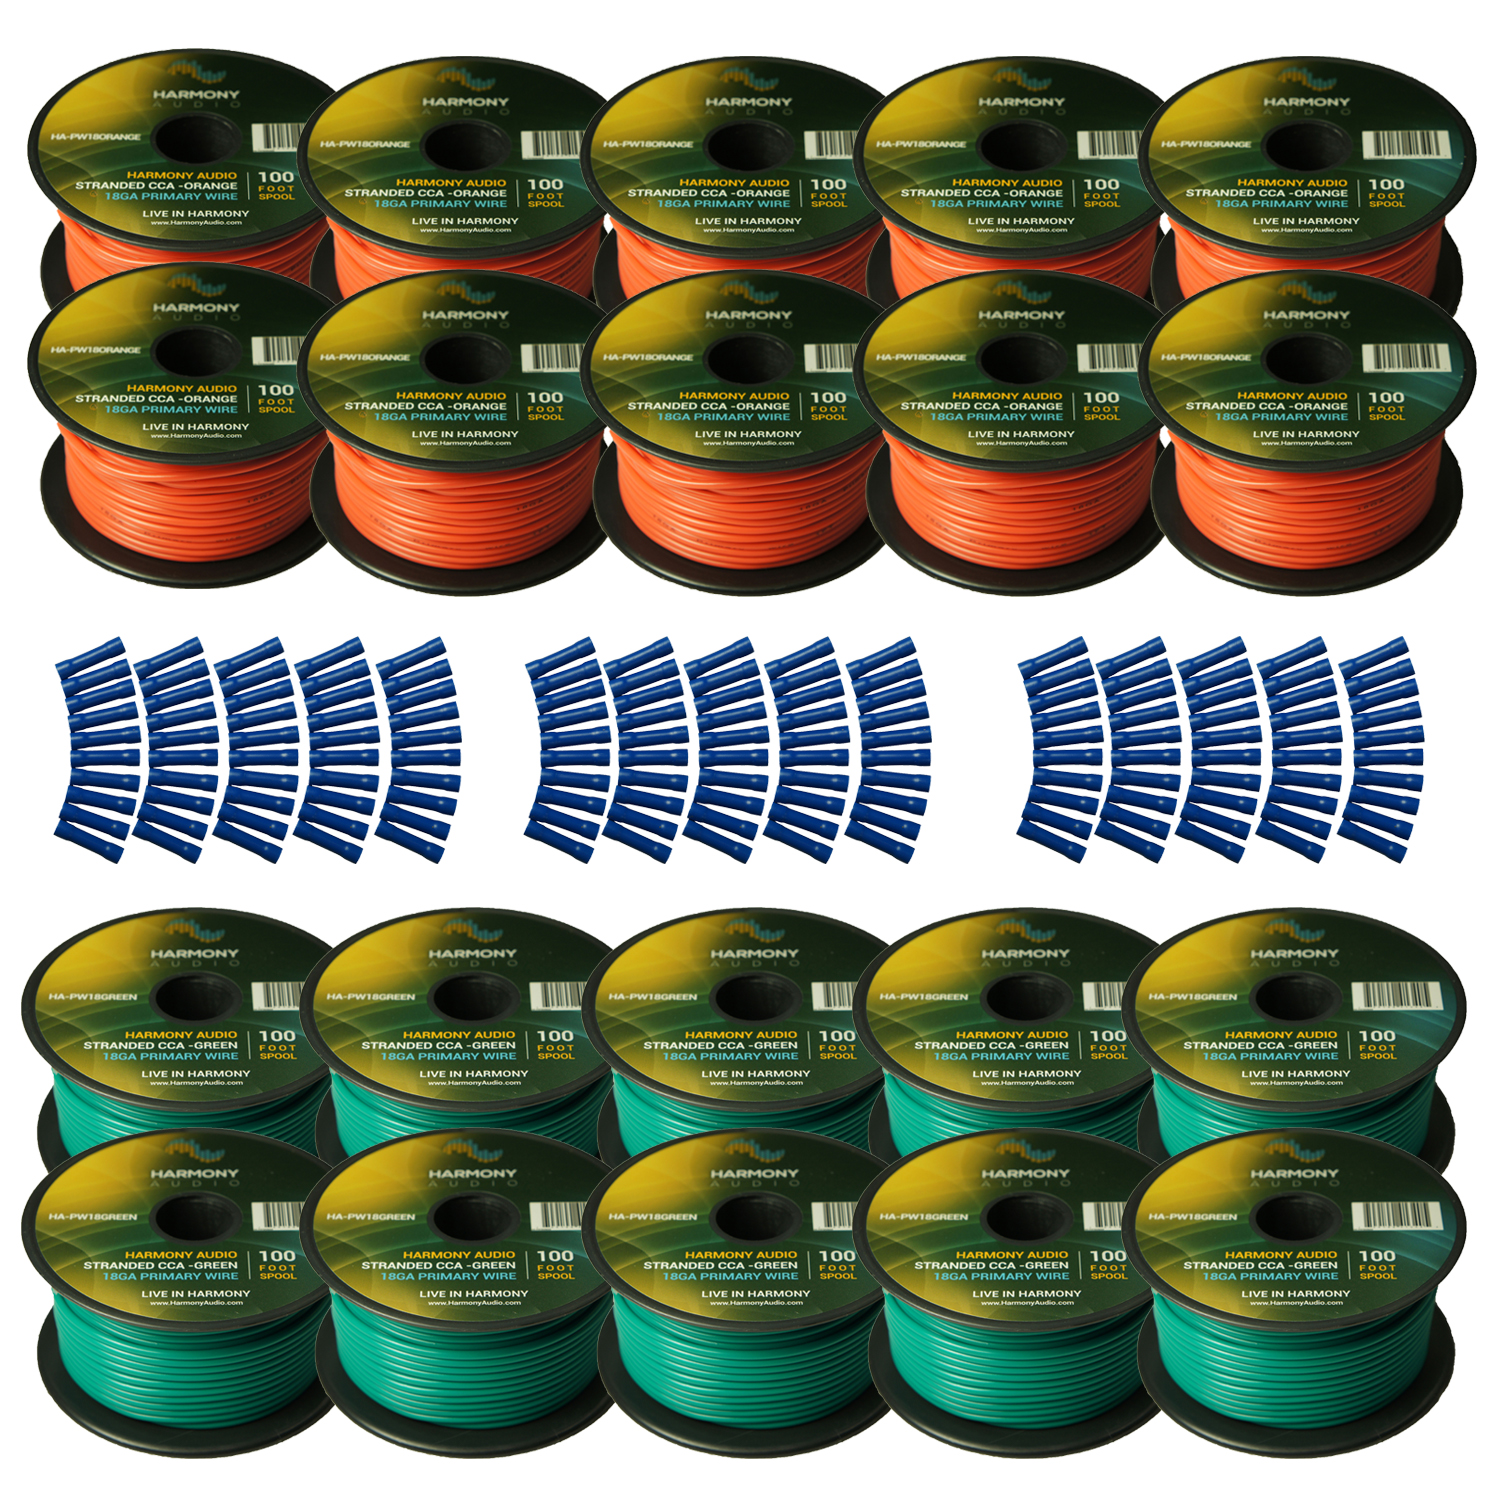 Harmony Audio Primary Single Conductor 18 Gauge Power or Ground Wire - 20 Rolls - 2000 Feet - Green & Orange for Car Audio / Trailer / Model Train / Remote